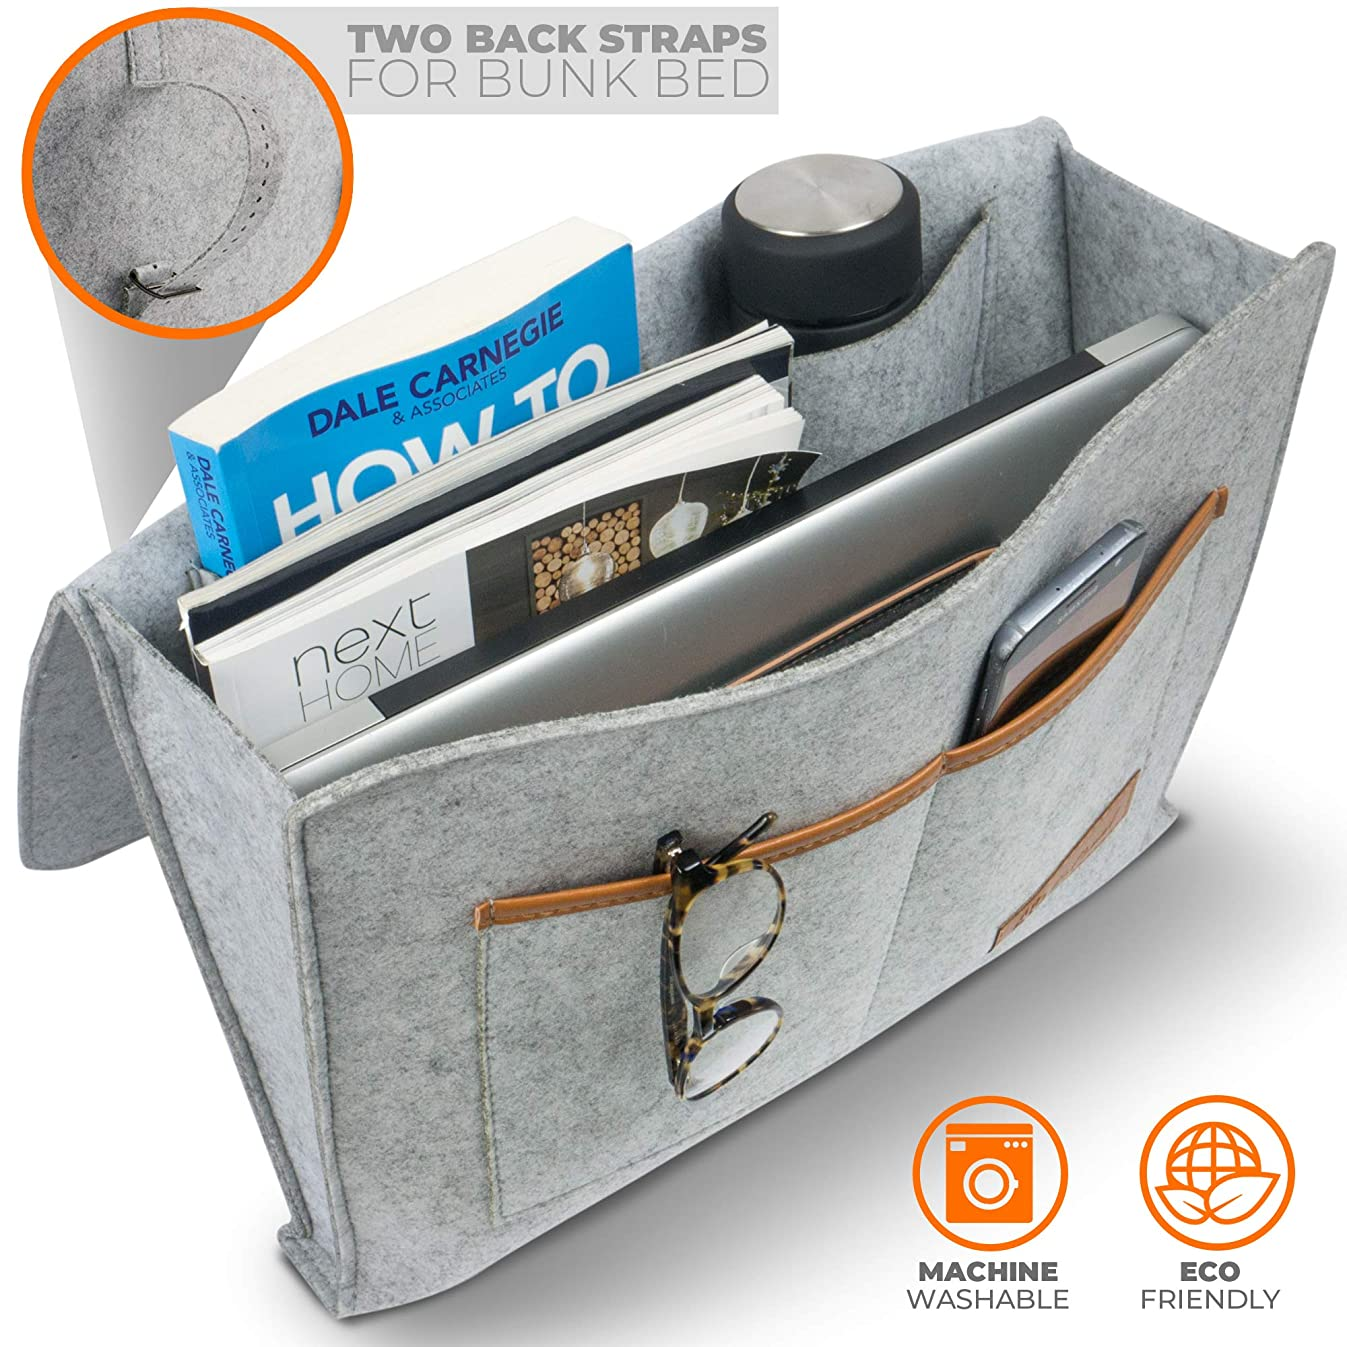 Premium Bedside Caddy Organizer - Heavy Duty Buckles for Bunk Bed Hold Up to 20 Lbs With Large Pockets - Double-Layer Thick Felt - Two Easy Ways of Installation - Perfect for College Dorm Room